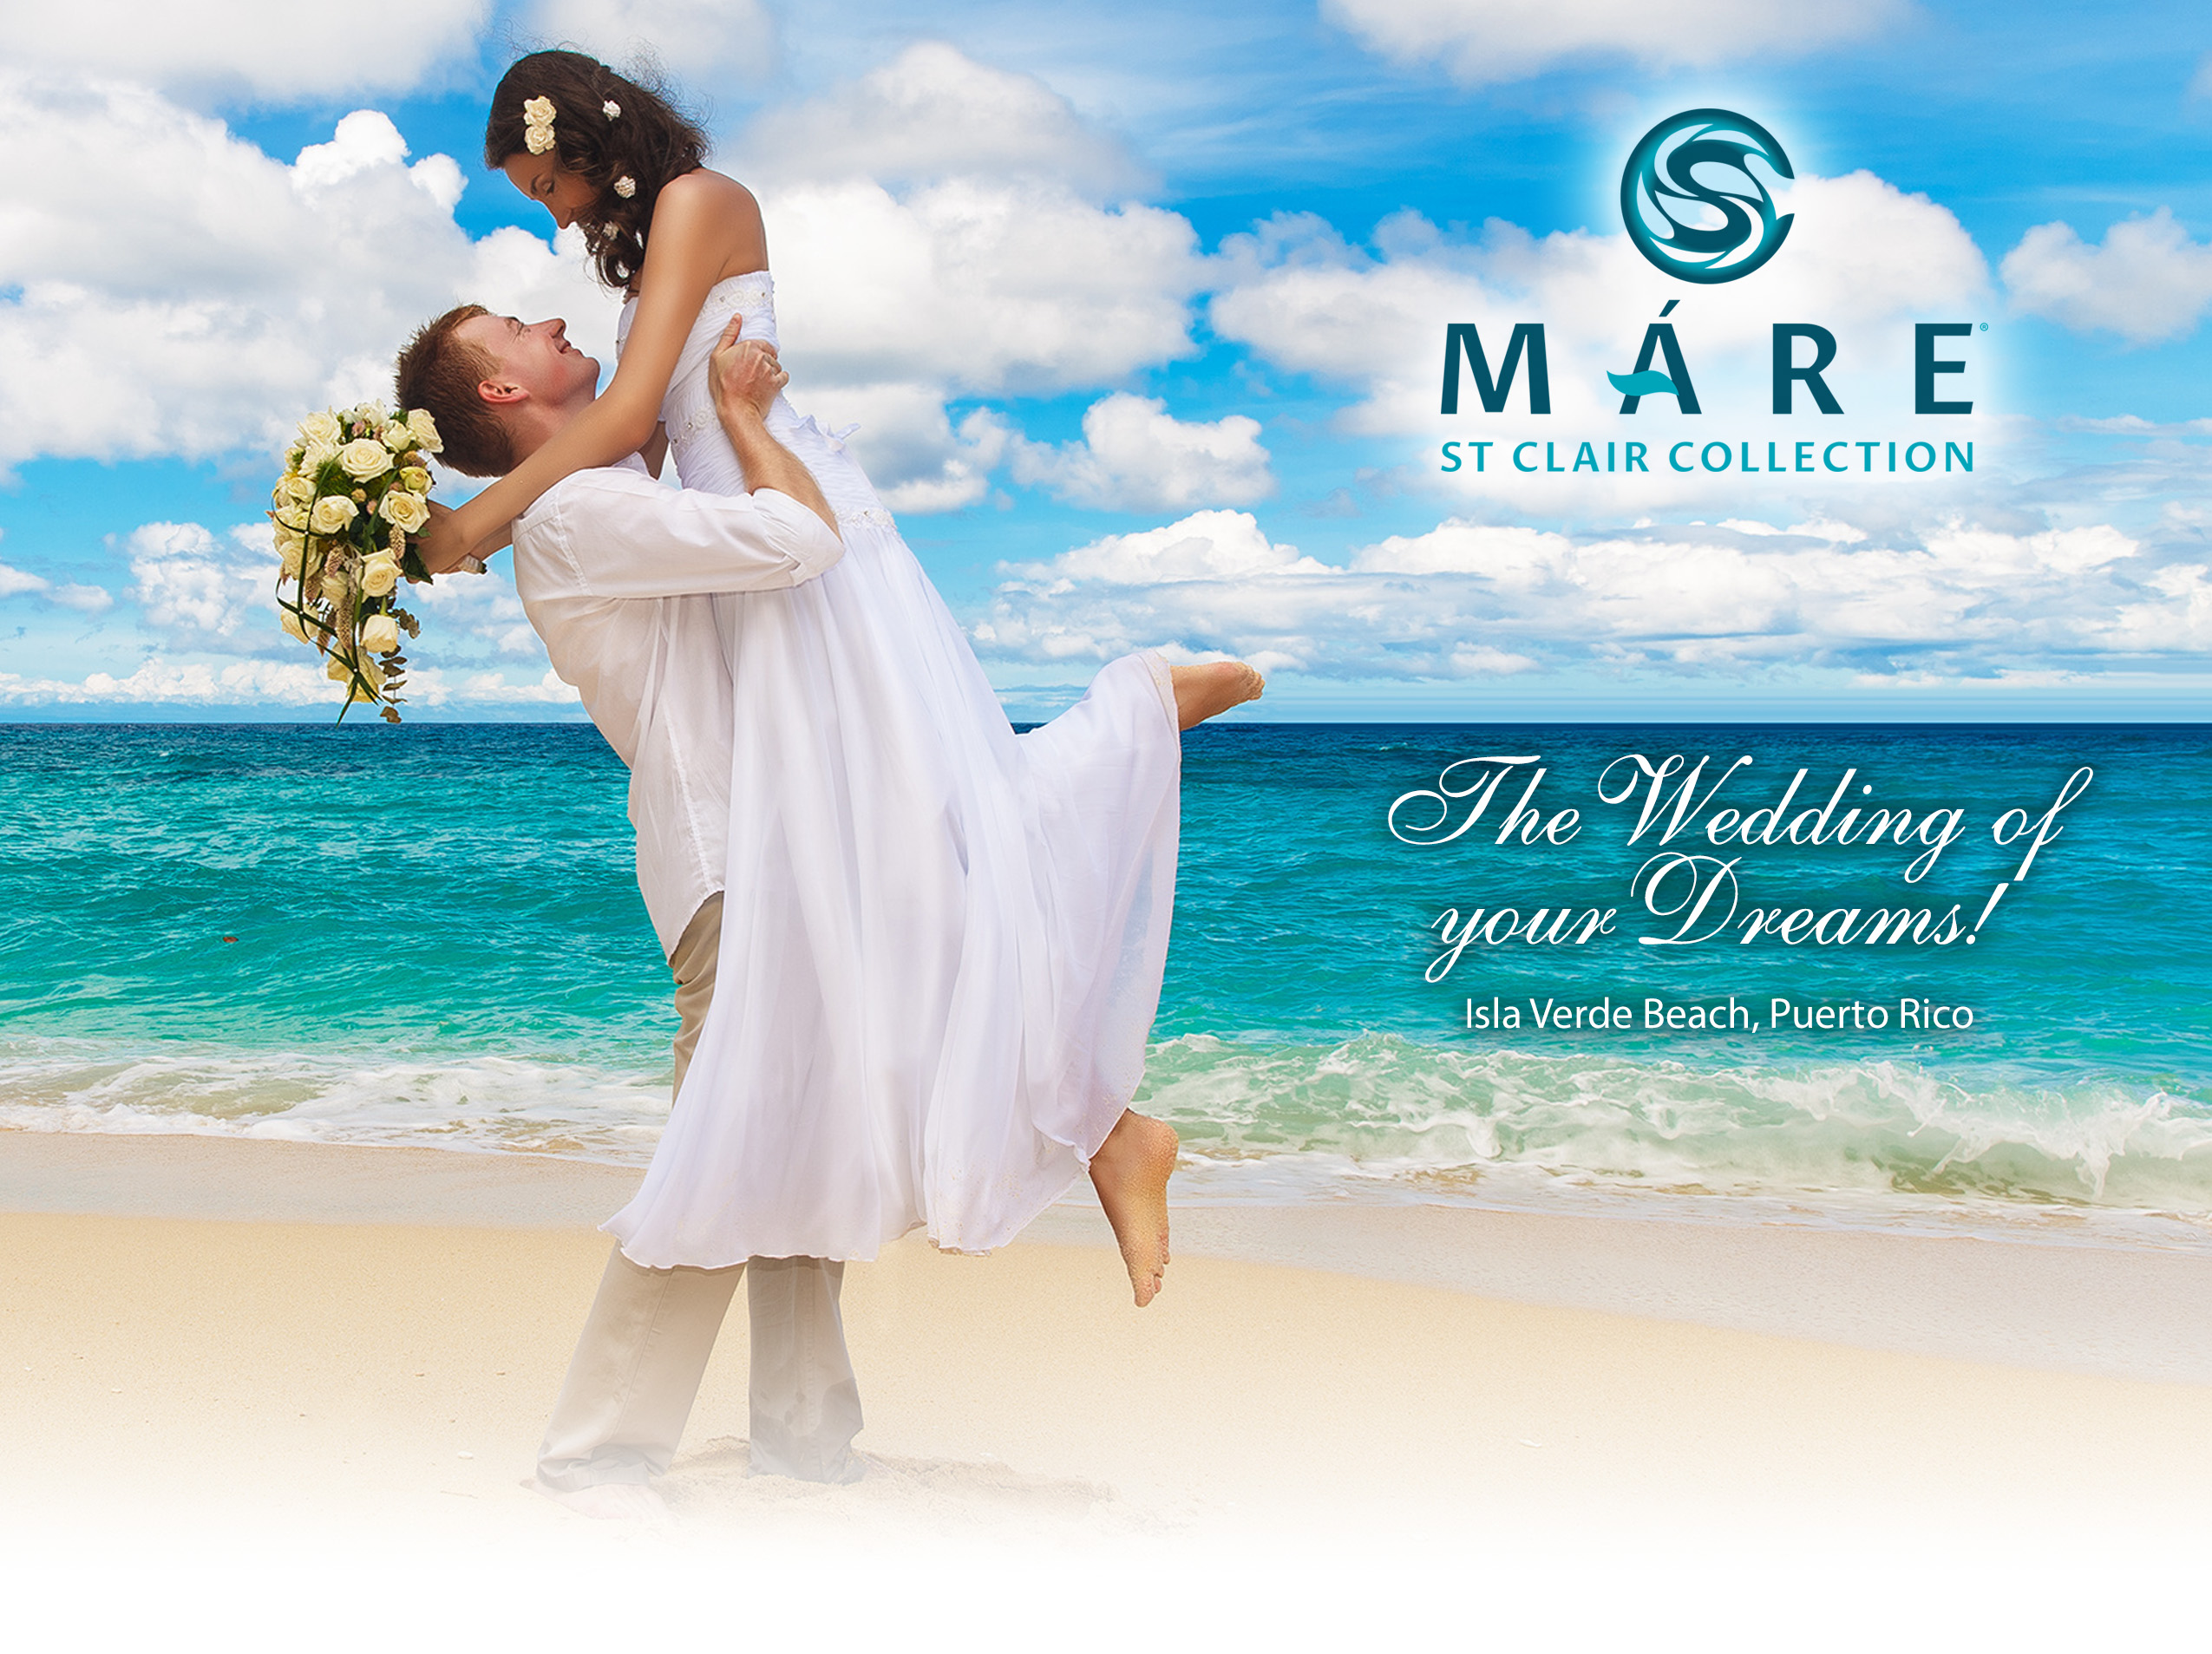 Puerto Rico Wedding Package.Destination Weddings Mare St Clair Hotel Isla Verde Beach